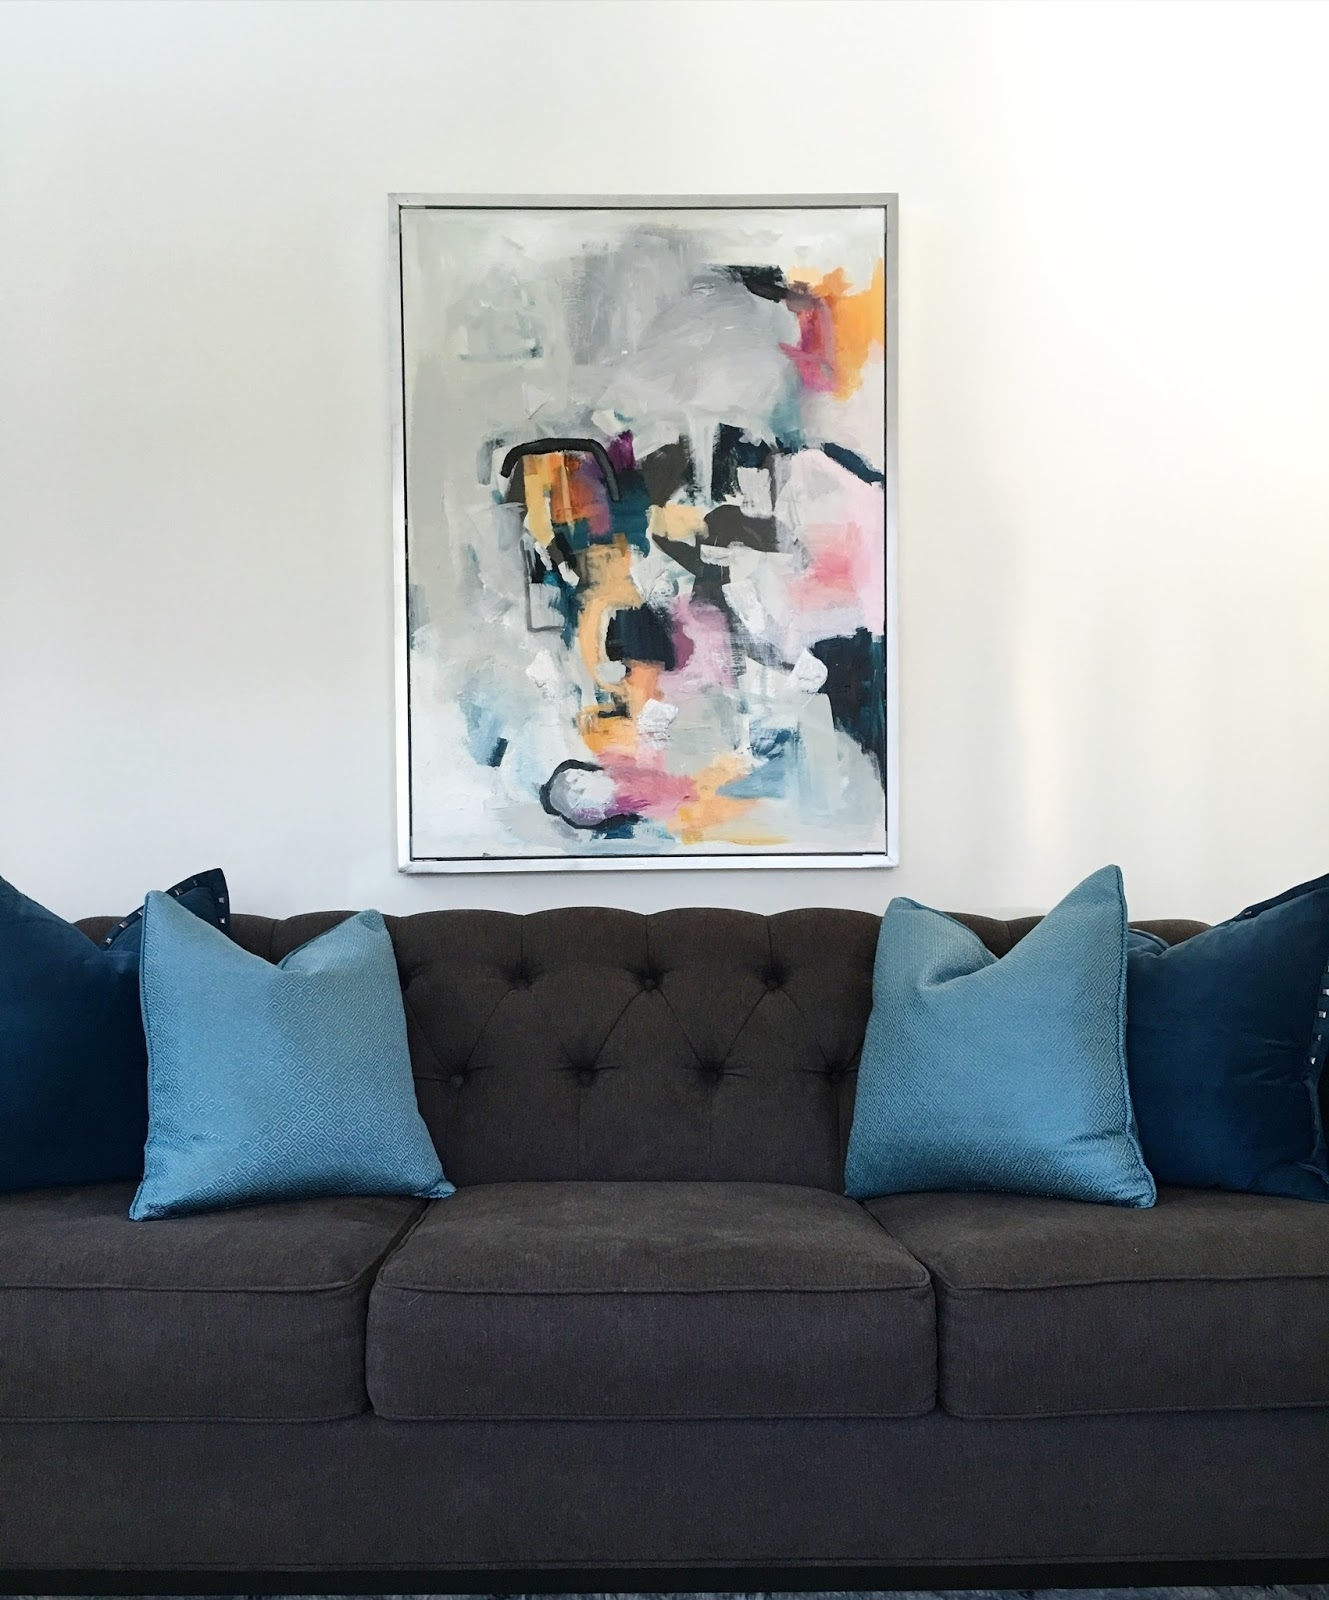 Livelovediy: Diy Abstract Wall Art Pertaining To Most Recent Diy Modern Abstract Wall Art (View 17 of 20)